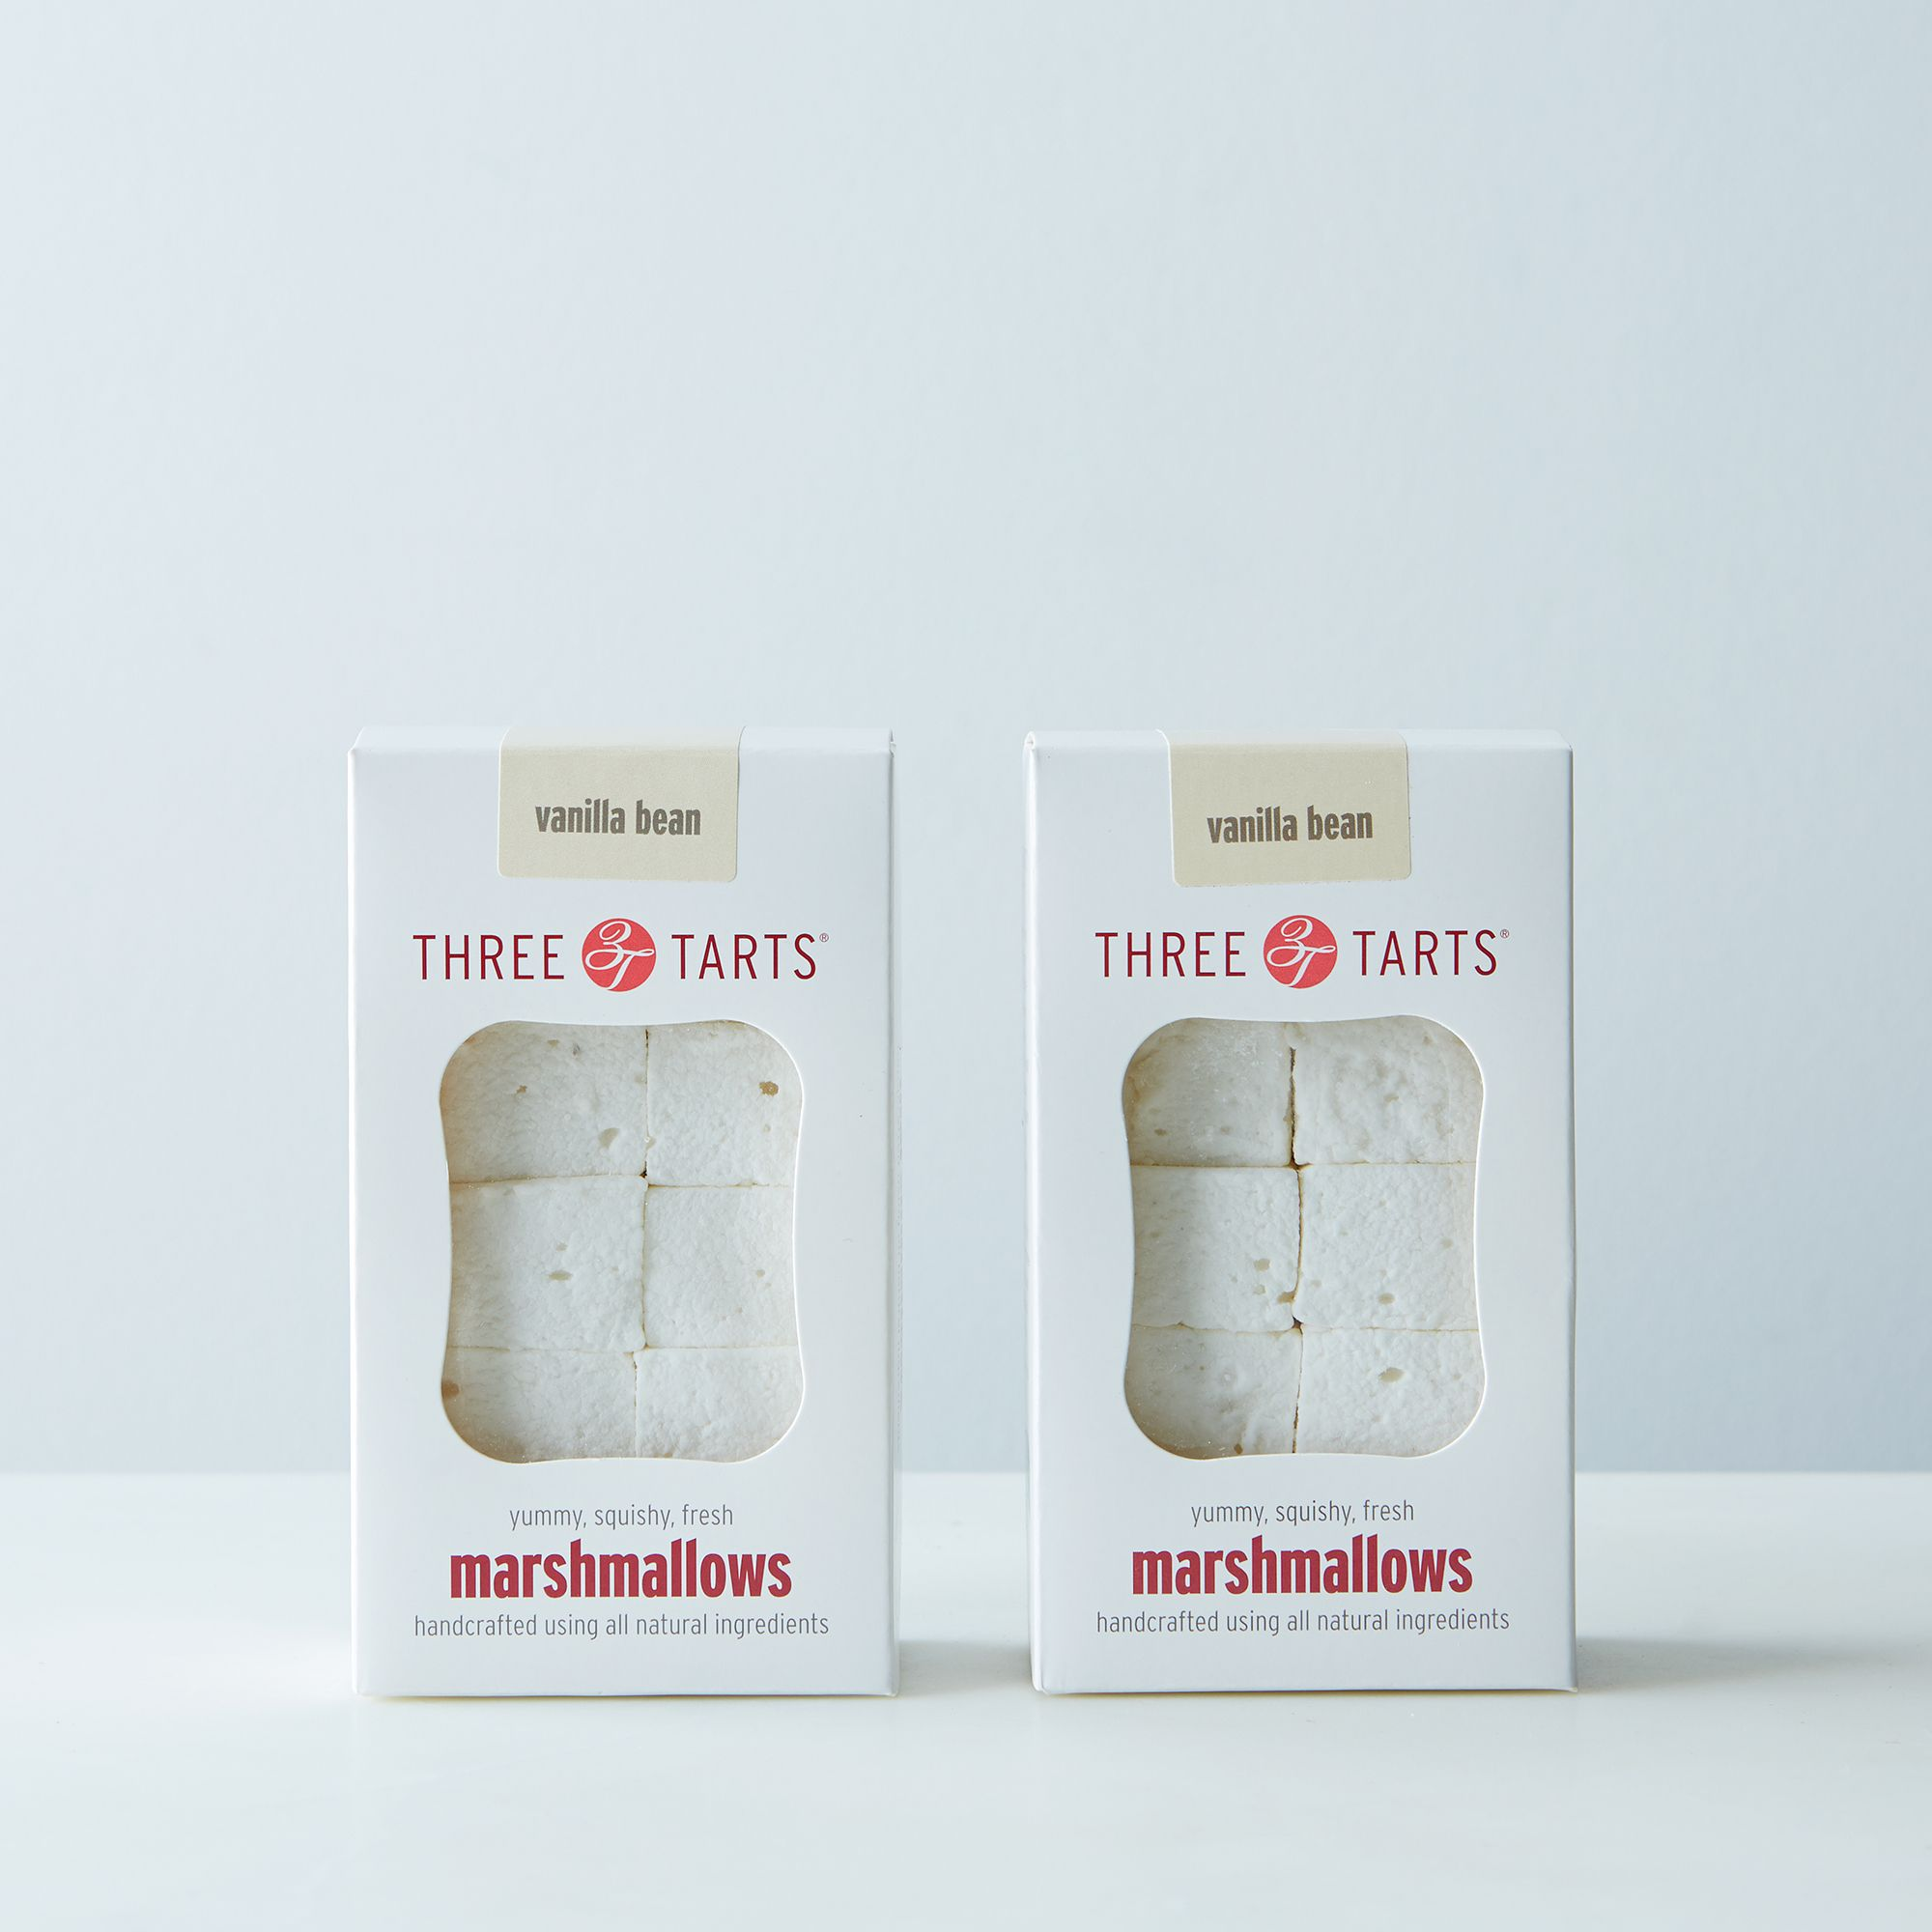 F45947b4 a0f6 11e5 a190 0ef7535729df  three tarts handcrafted flavored marshmallows vanilla setof2 provisions mark weinberg 18 09 14 0567 silo